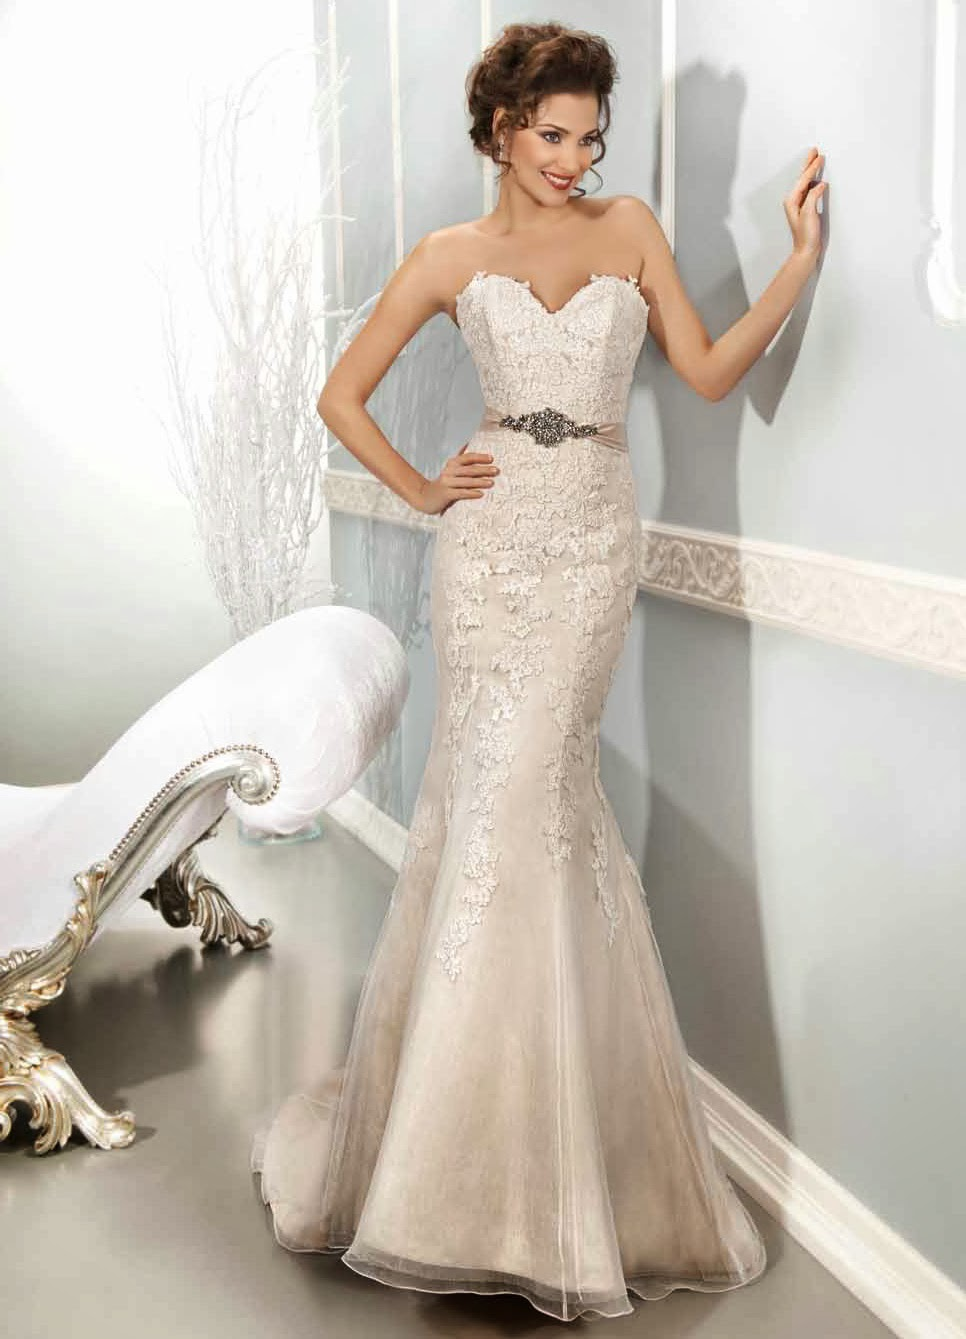 Raffaele ciuca wedding dresses melbourne dress online uk for Cheap wedding dresses melbourne